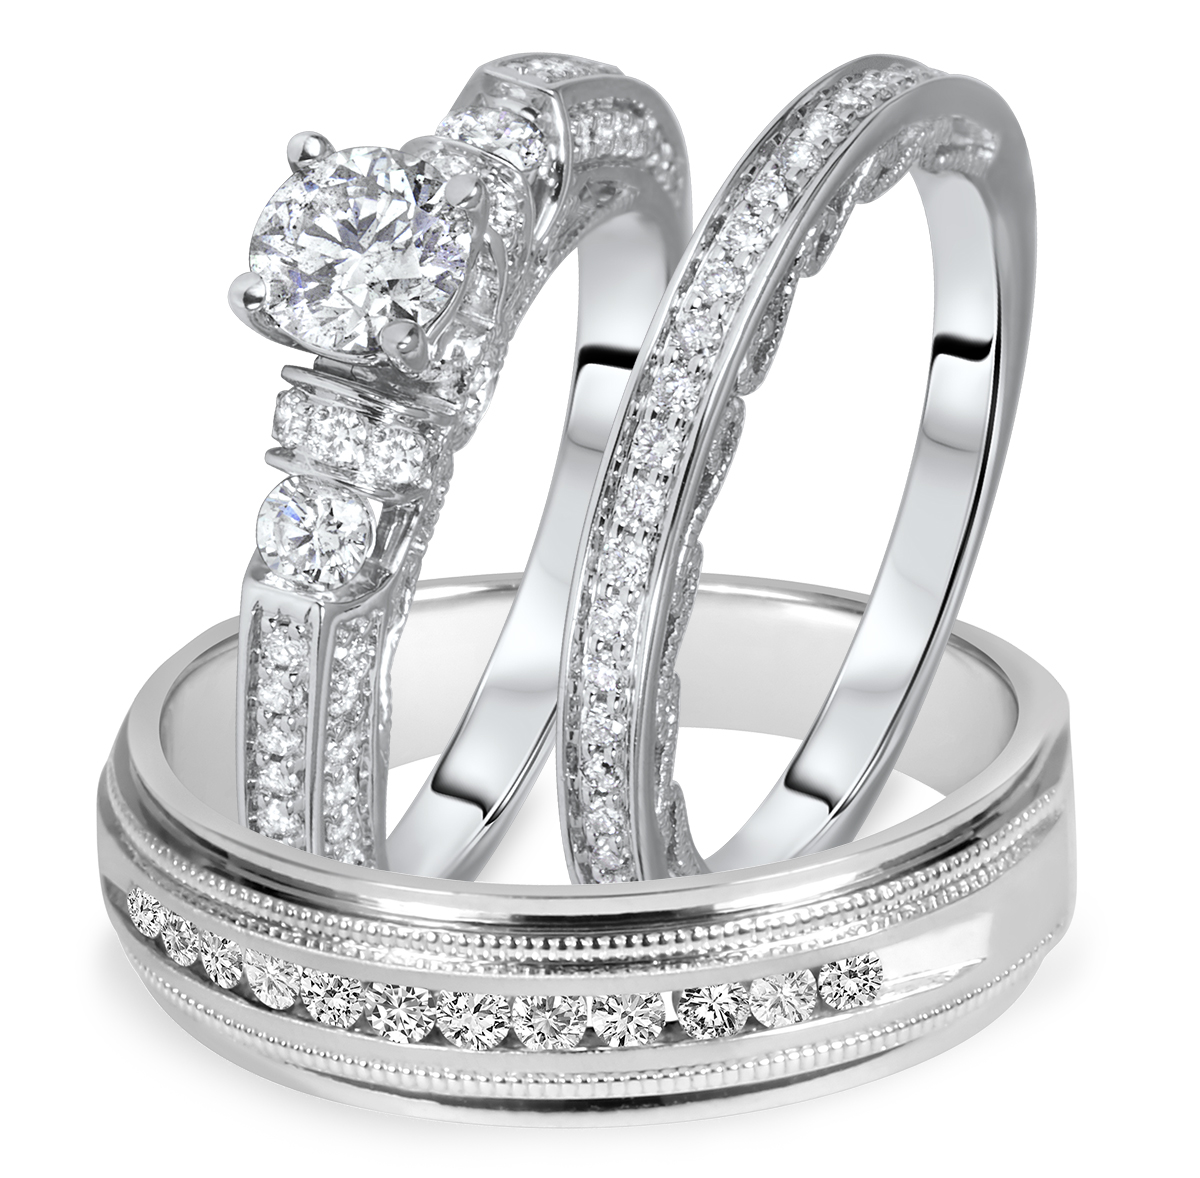 1 1/2 Carat T.W. Round Cut Diamond Matching Trio Wedding Ring Set 14K White Gold